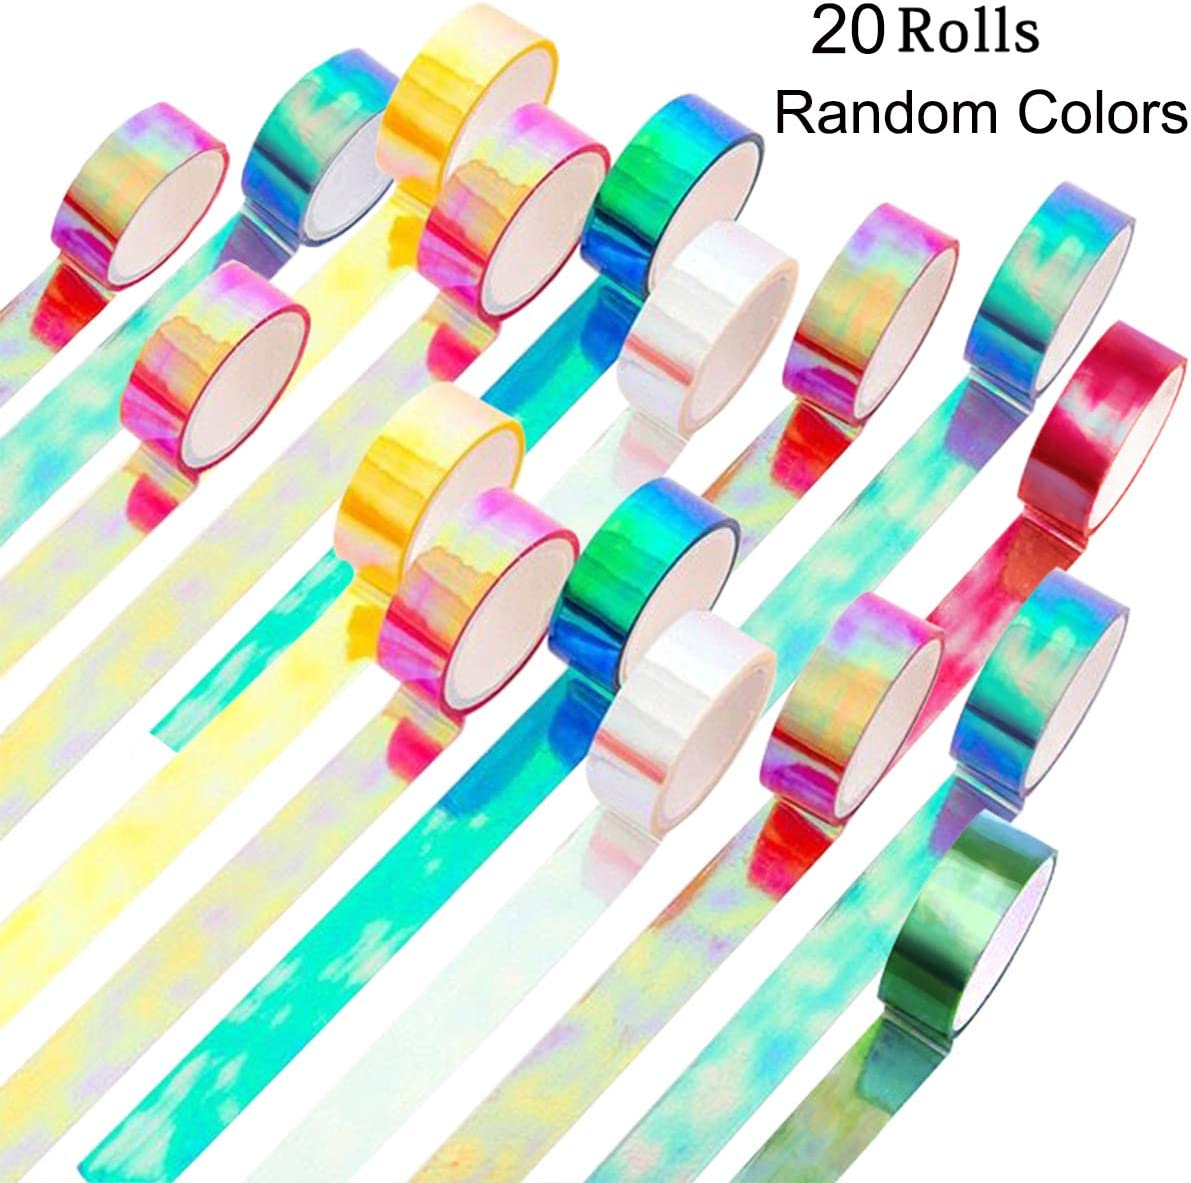 Holographic Colored Masking Tape Set, KISSBUTY 20 Rolls Rainbow Masking Tapes Translucent Labelling Tapes Decorative Waterproof Adhesive Iridescent Graphic Art Tape for Arts DIY Office Supplies